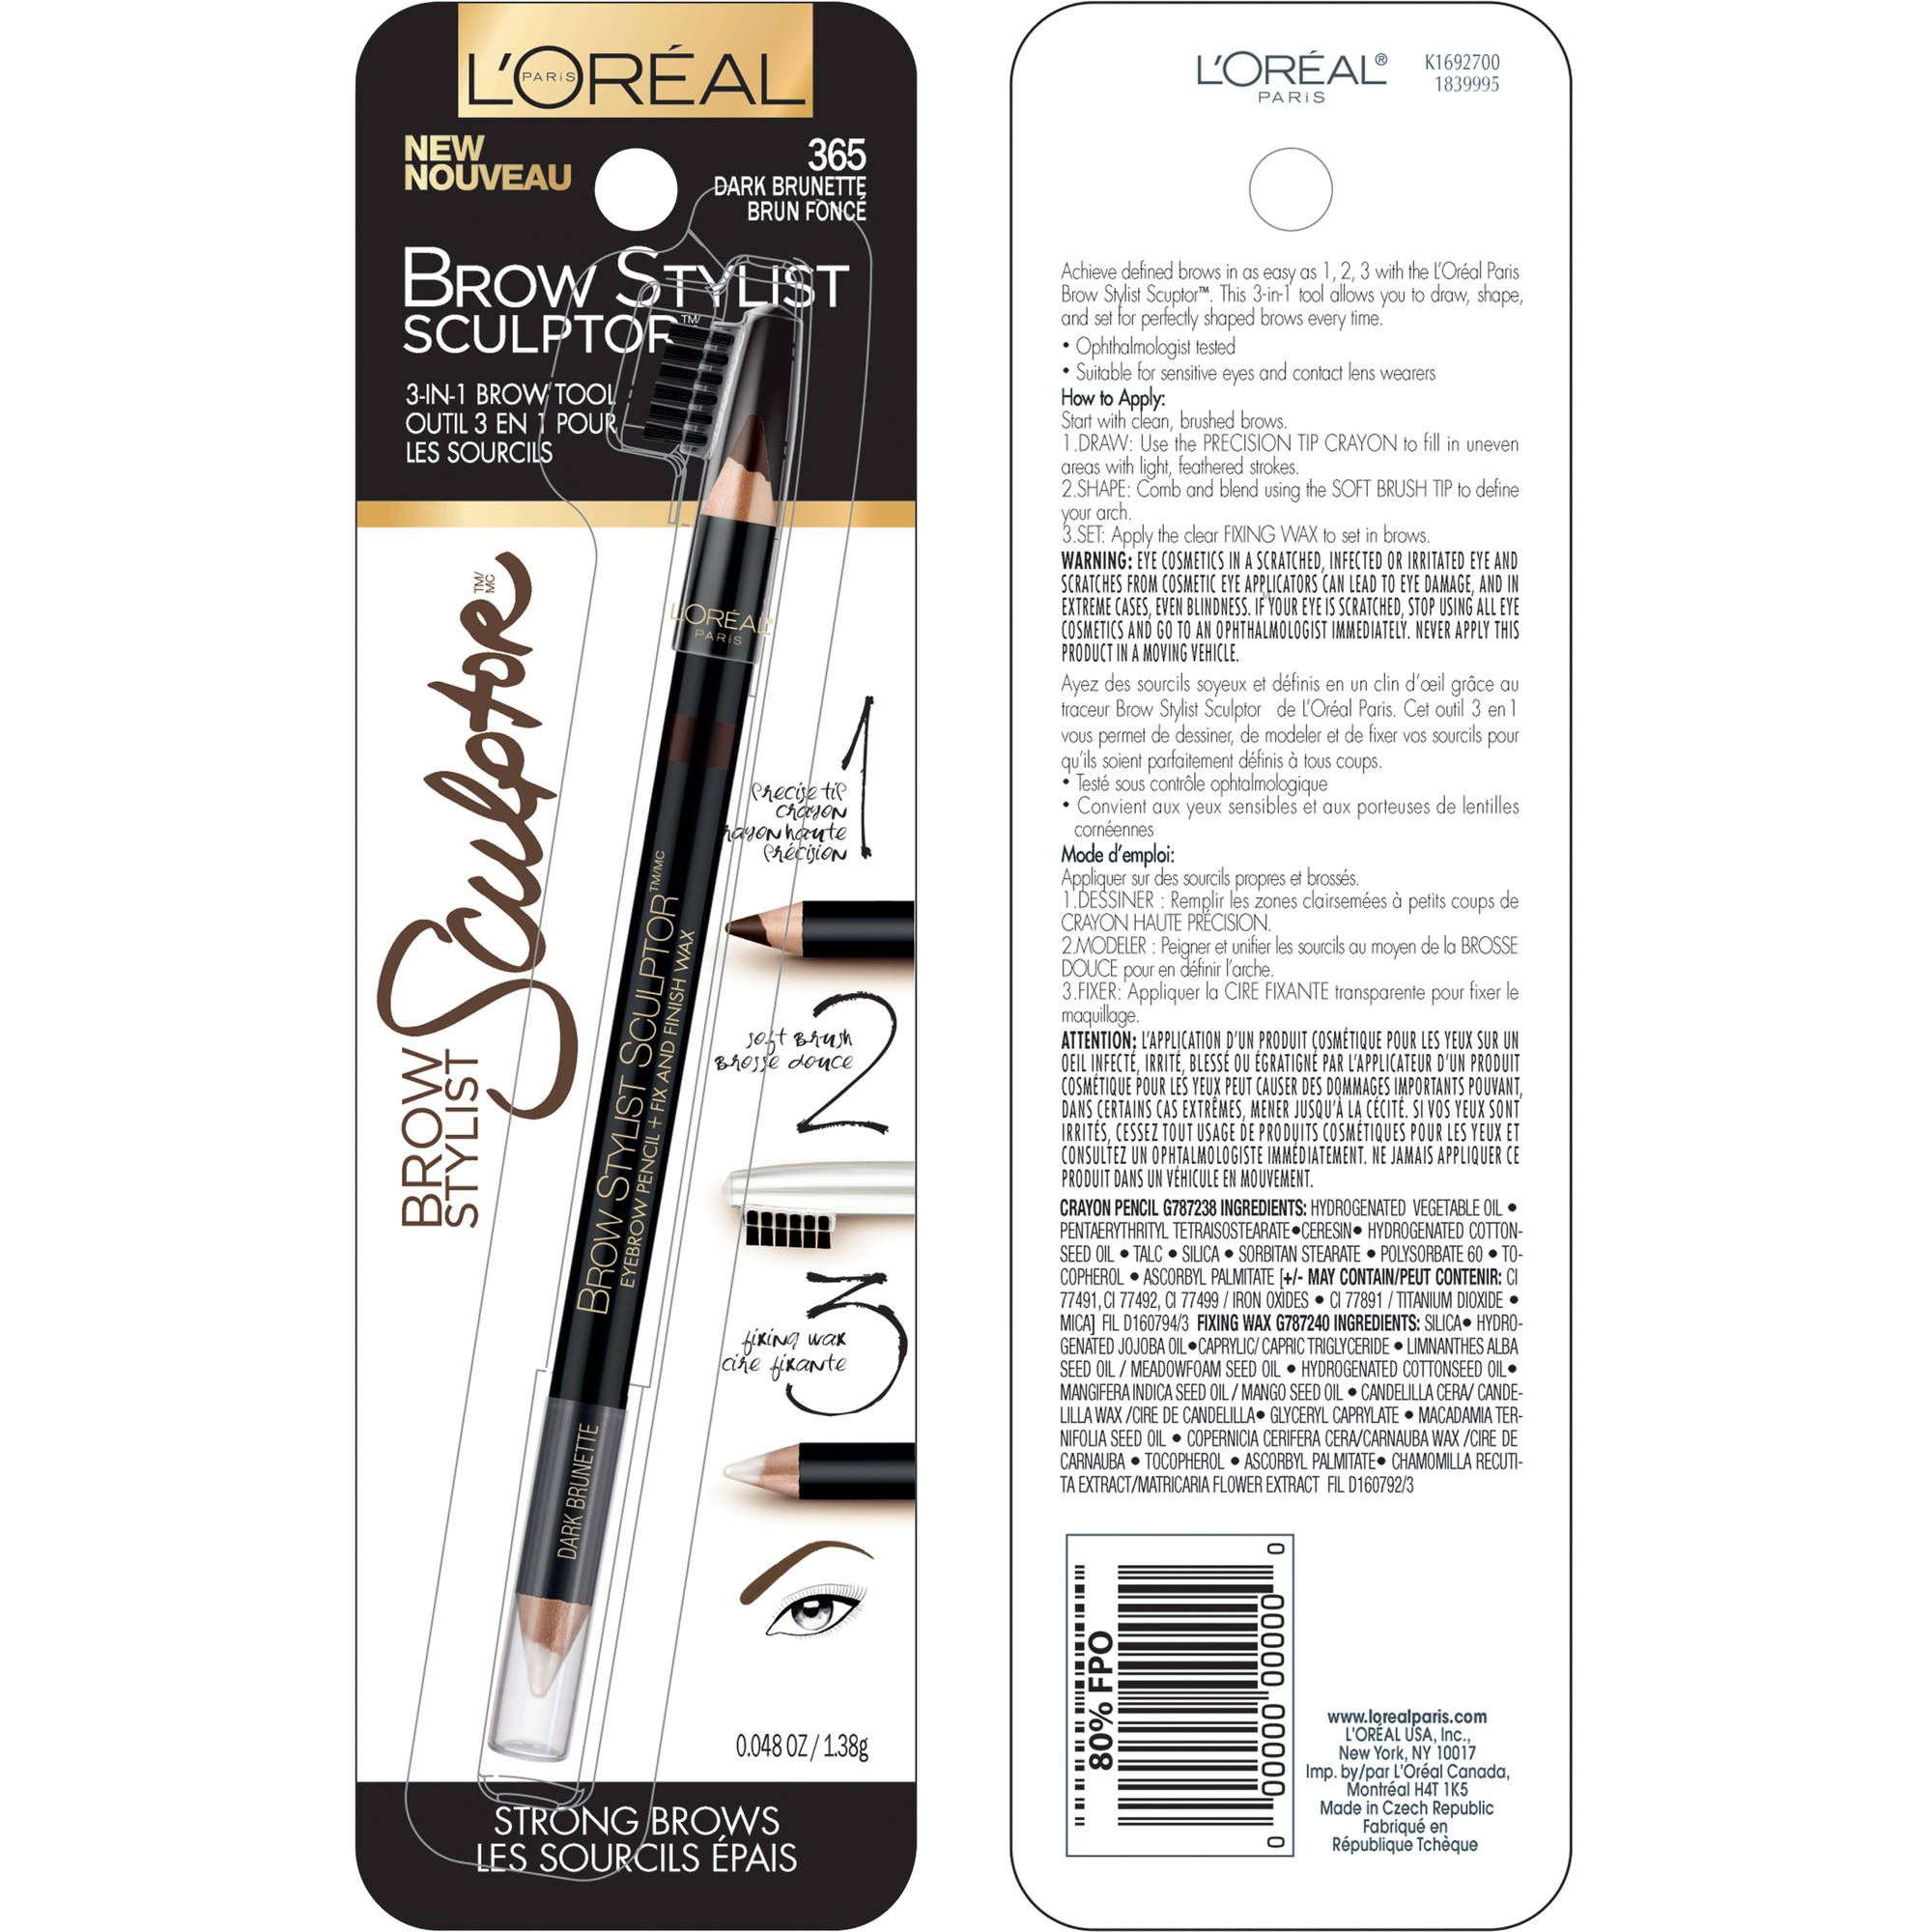 d7acb289520 SALE $6.19 - Achieve bold, defined brows in as easy as 1, 2, 3 with our L'Oreal  Paris Brow Stylist Sculptor. This 3-in-1 tool eyebrow pencil lets you draw,  ...